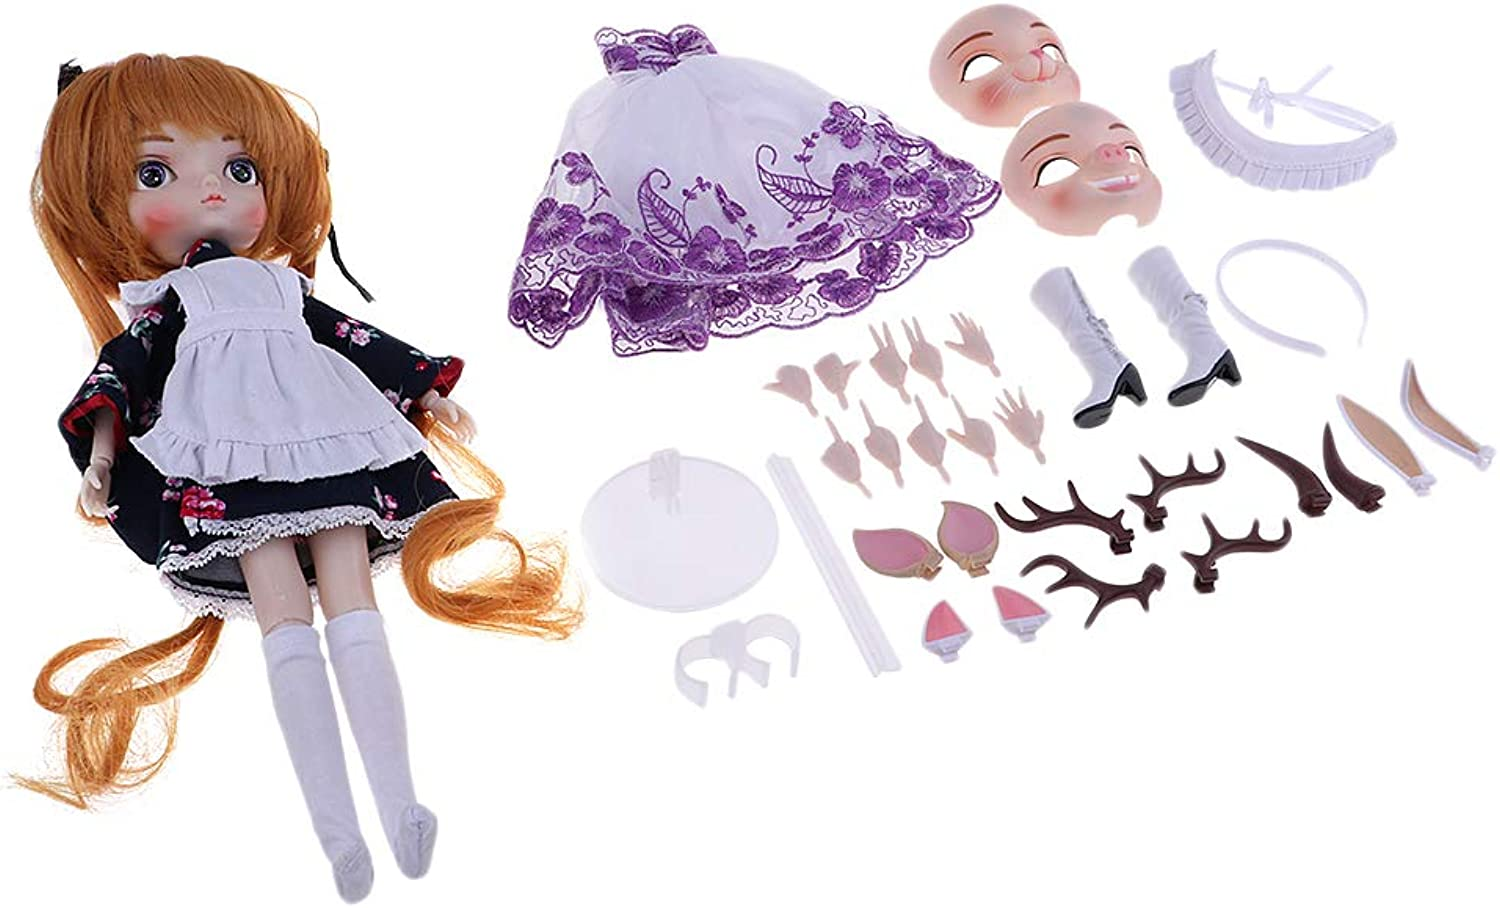 Baoblaze 1 6 Bjd Girl Doll Ball Joints Doll & DIY Accessories for BBgirl for SD Doll